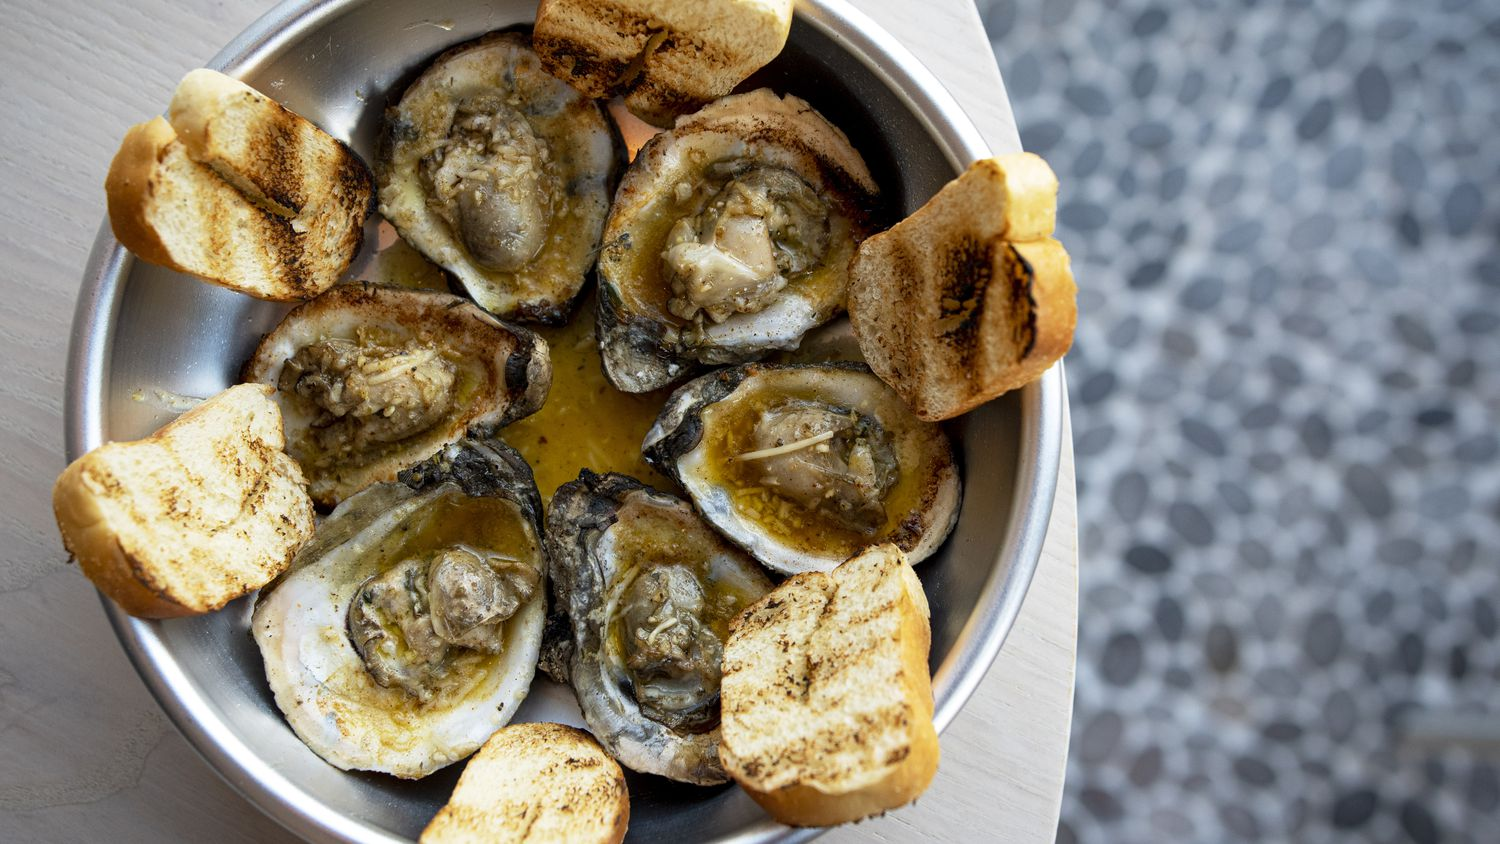 Chargrilled oysters are on the menu at Krio restaurant in the Bishop Arts District.